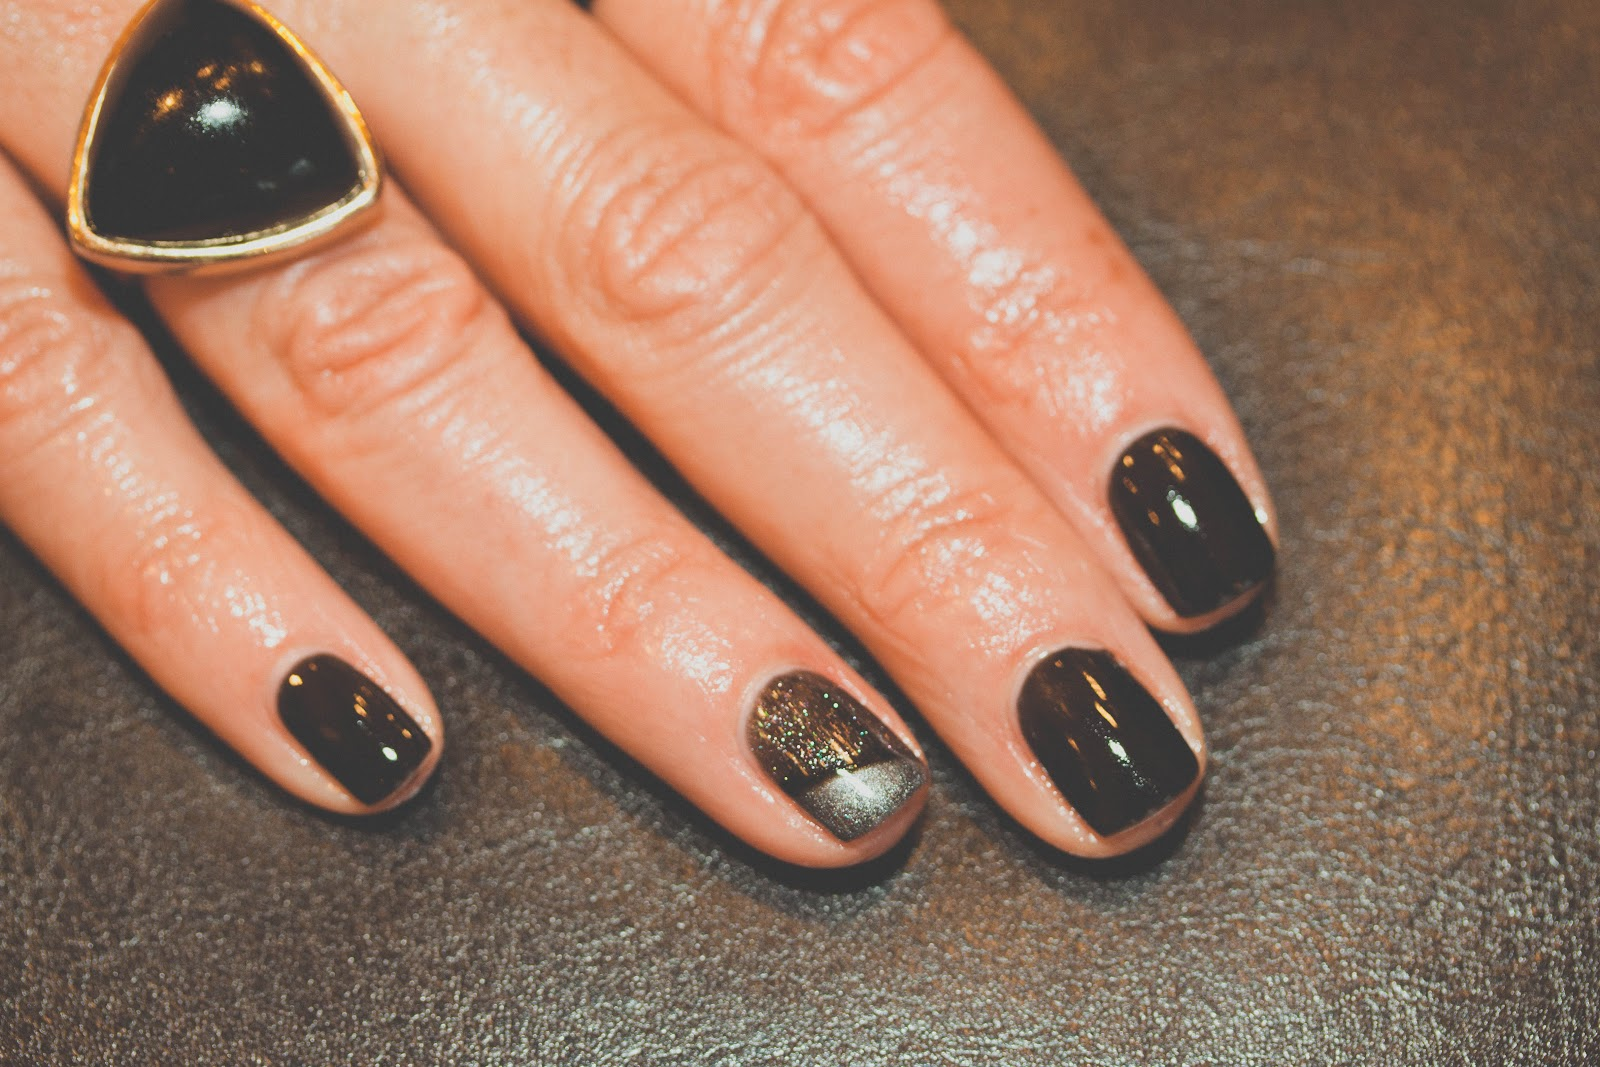 The Gel Manicure • Lords and Ladies Salon & Medical Spa